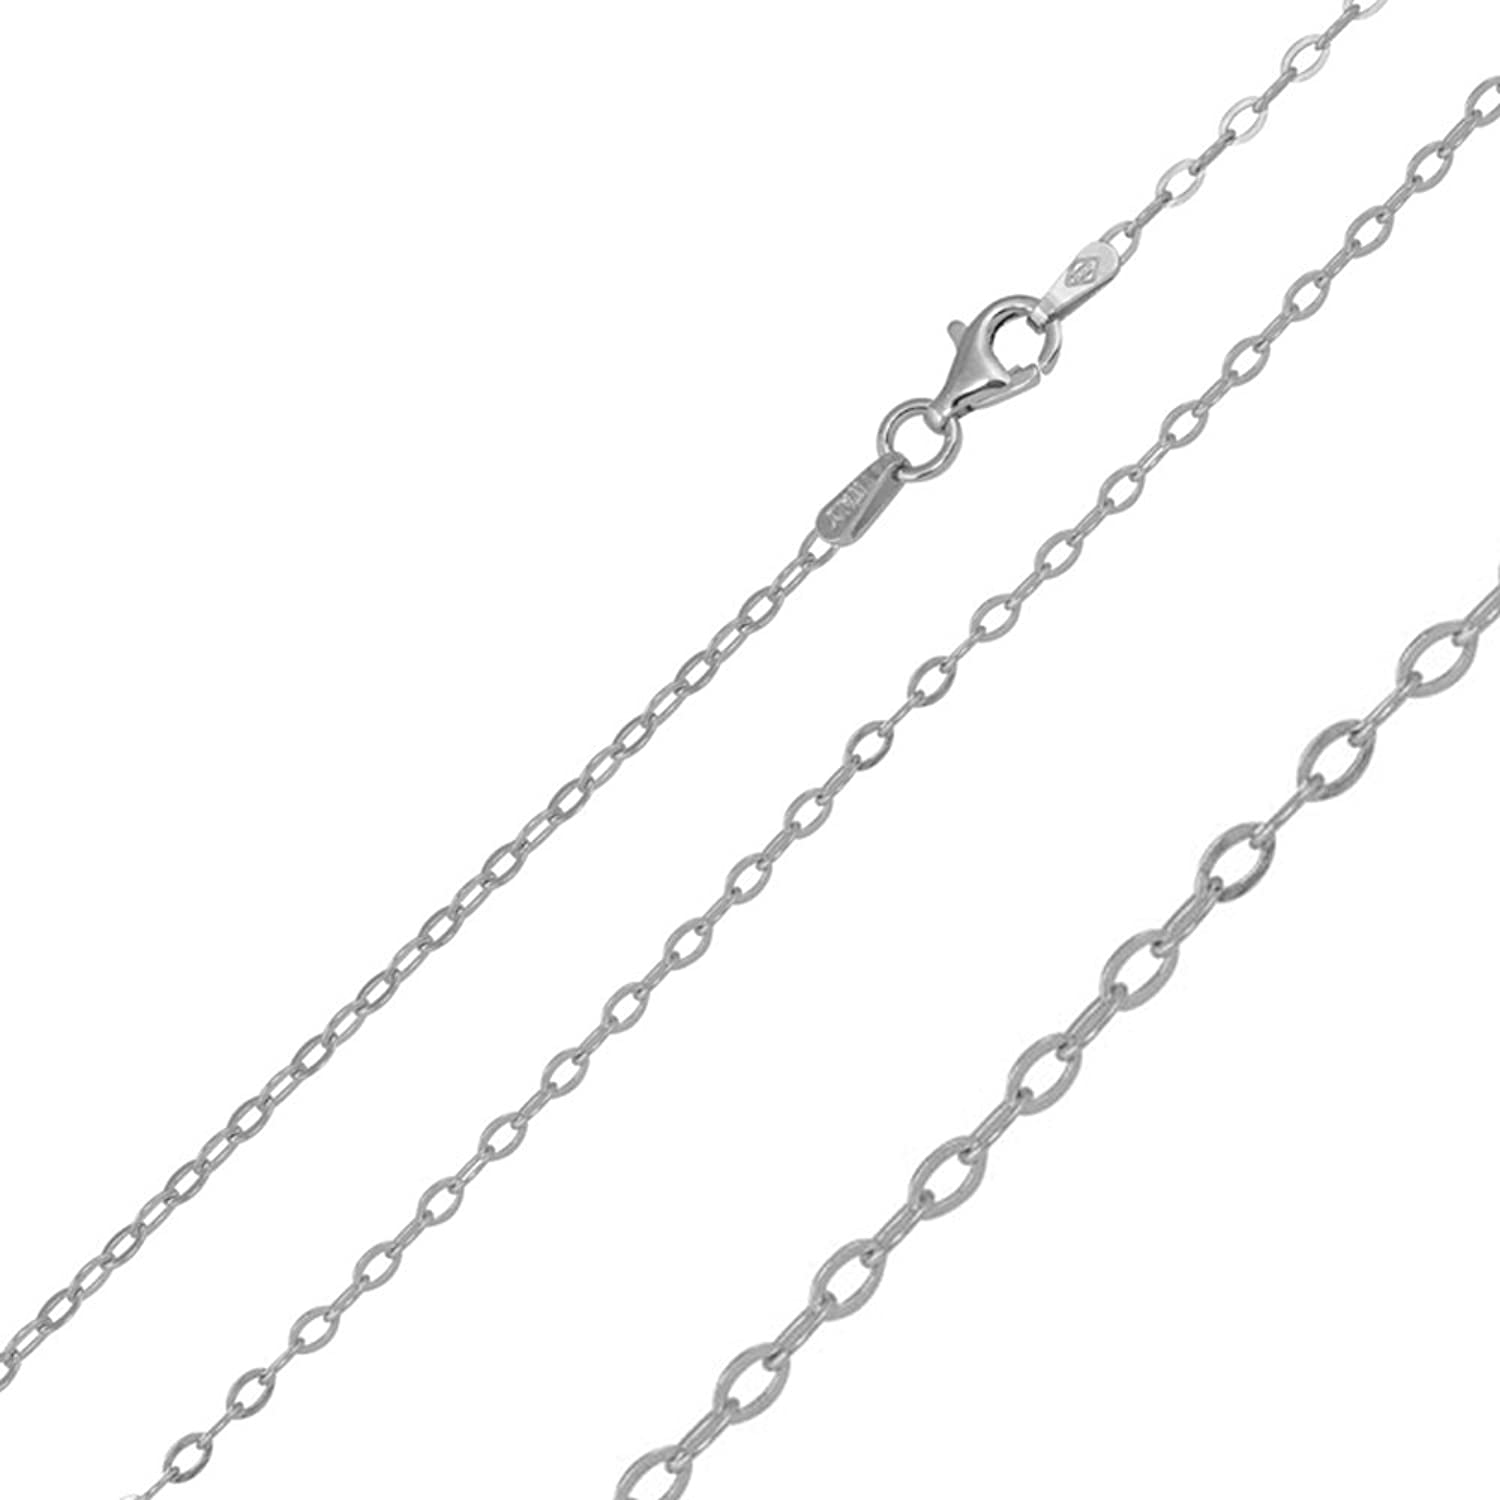 1.9mm Sterling Silver Italian Necklace Rhodium Plated Oval Flat Link Chain (16, 18, 20 Inch)